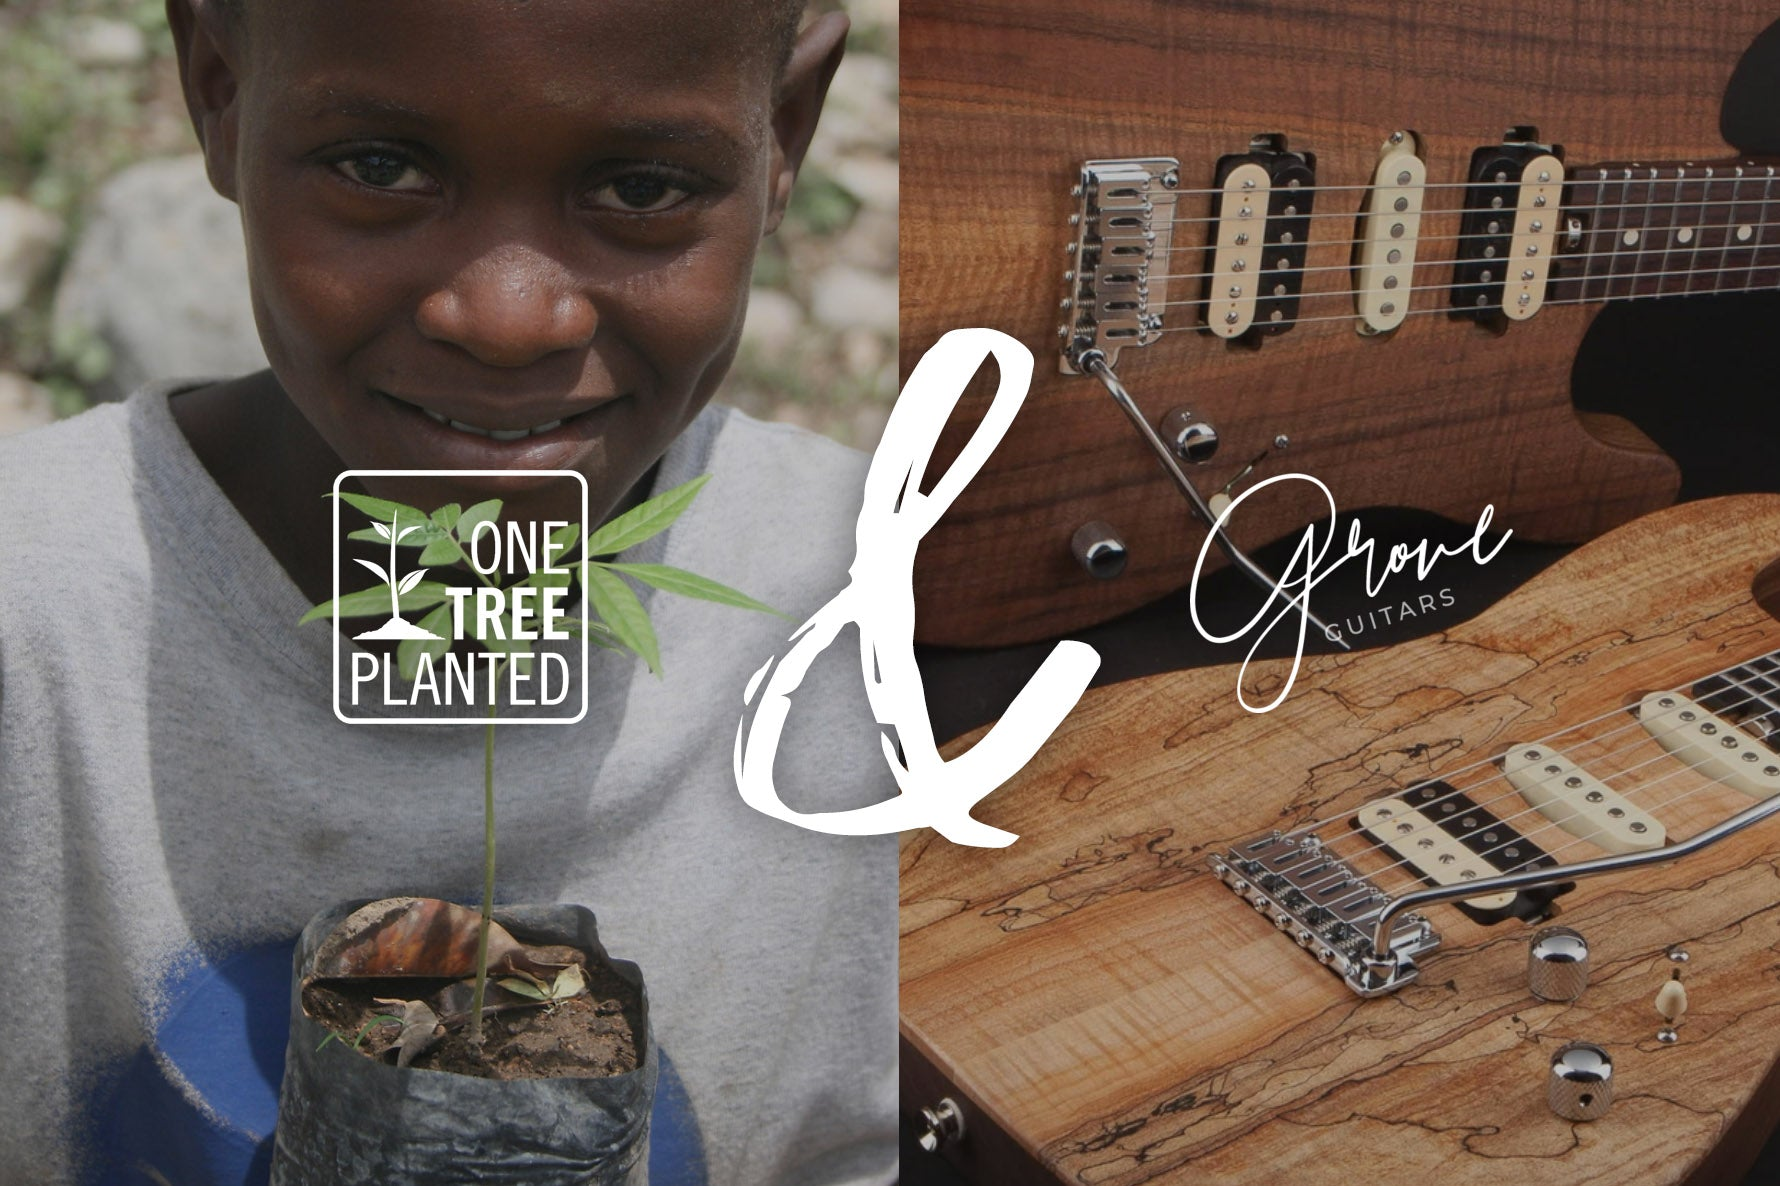 One Tree Planted & Grove Guitars